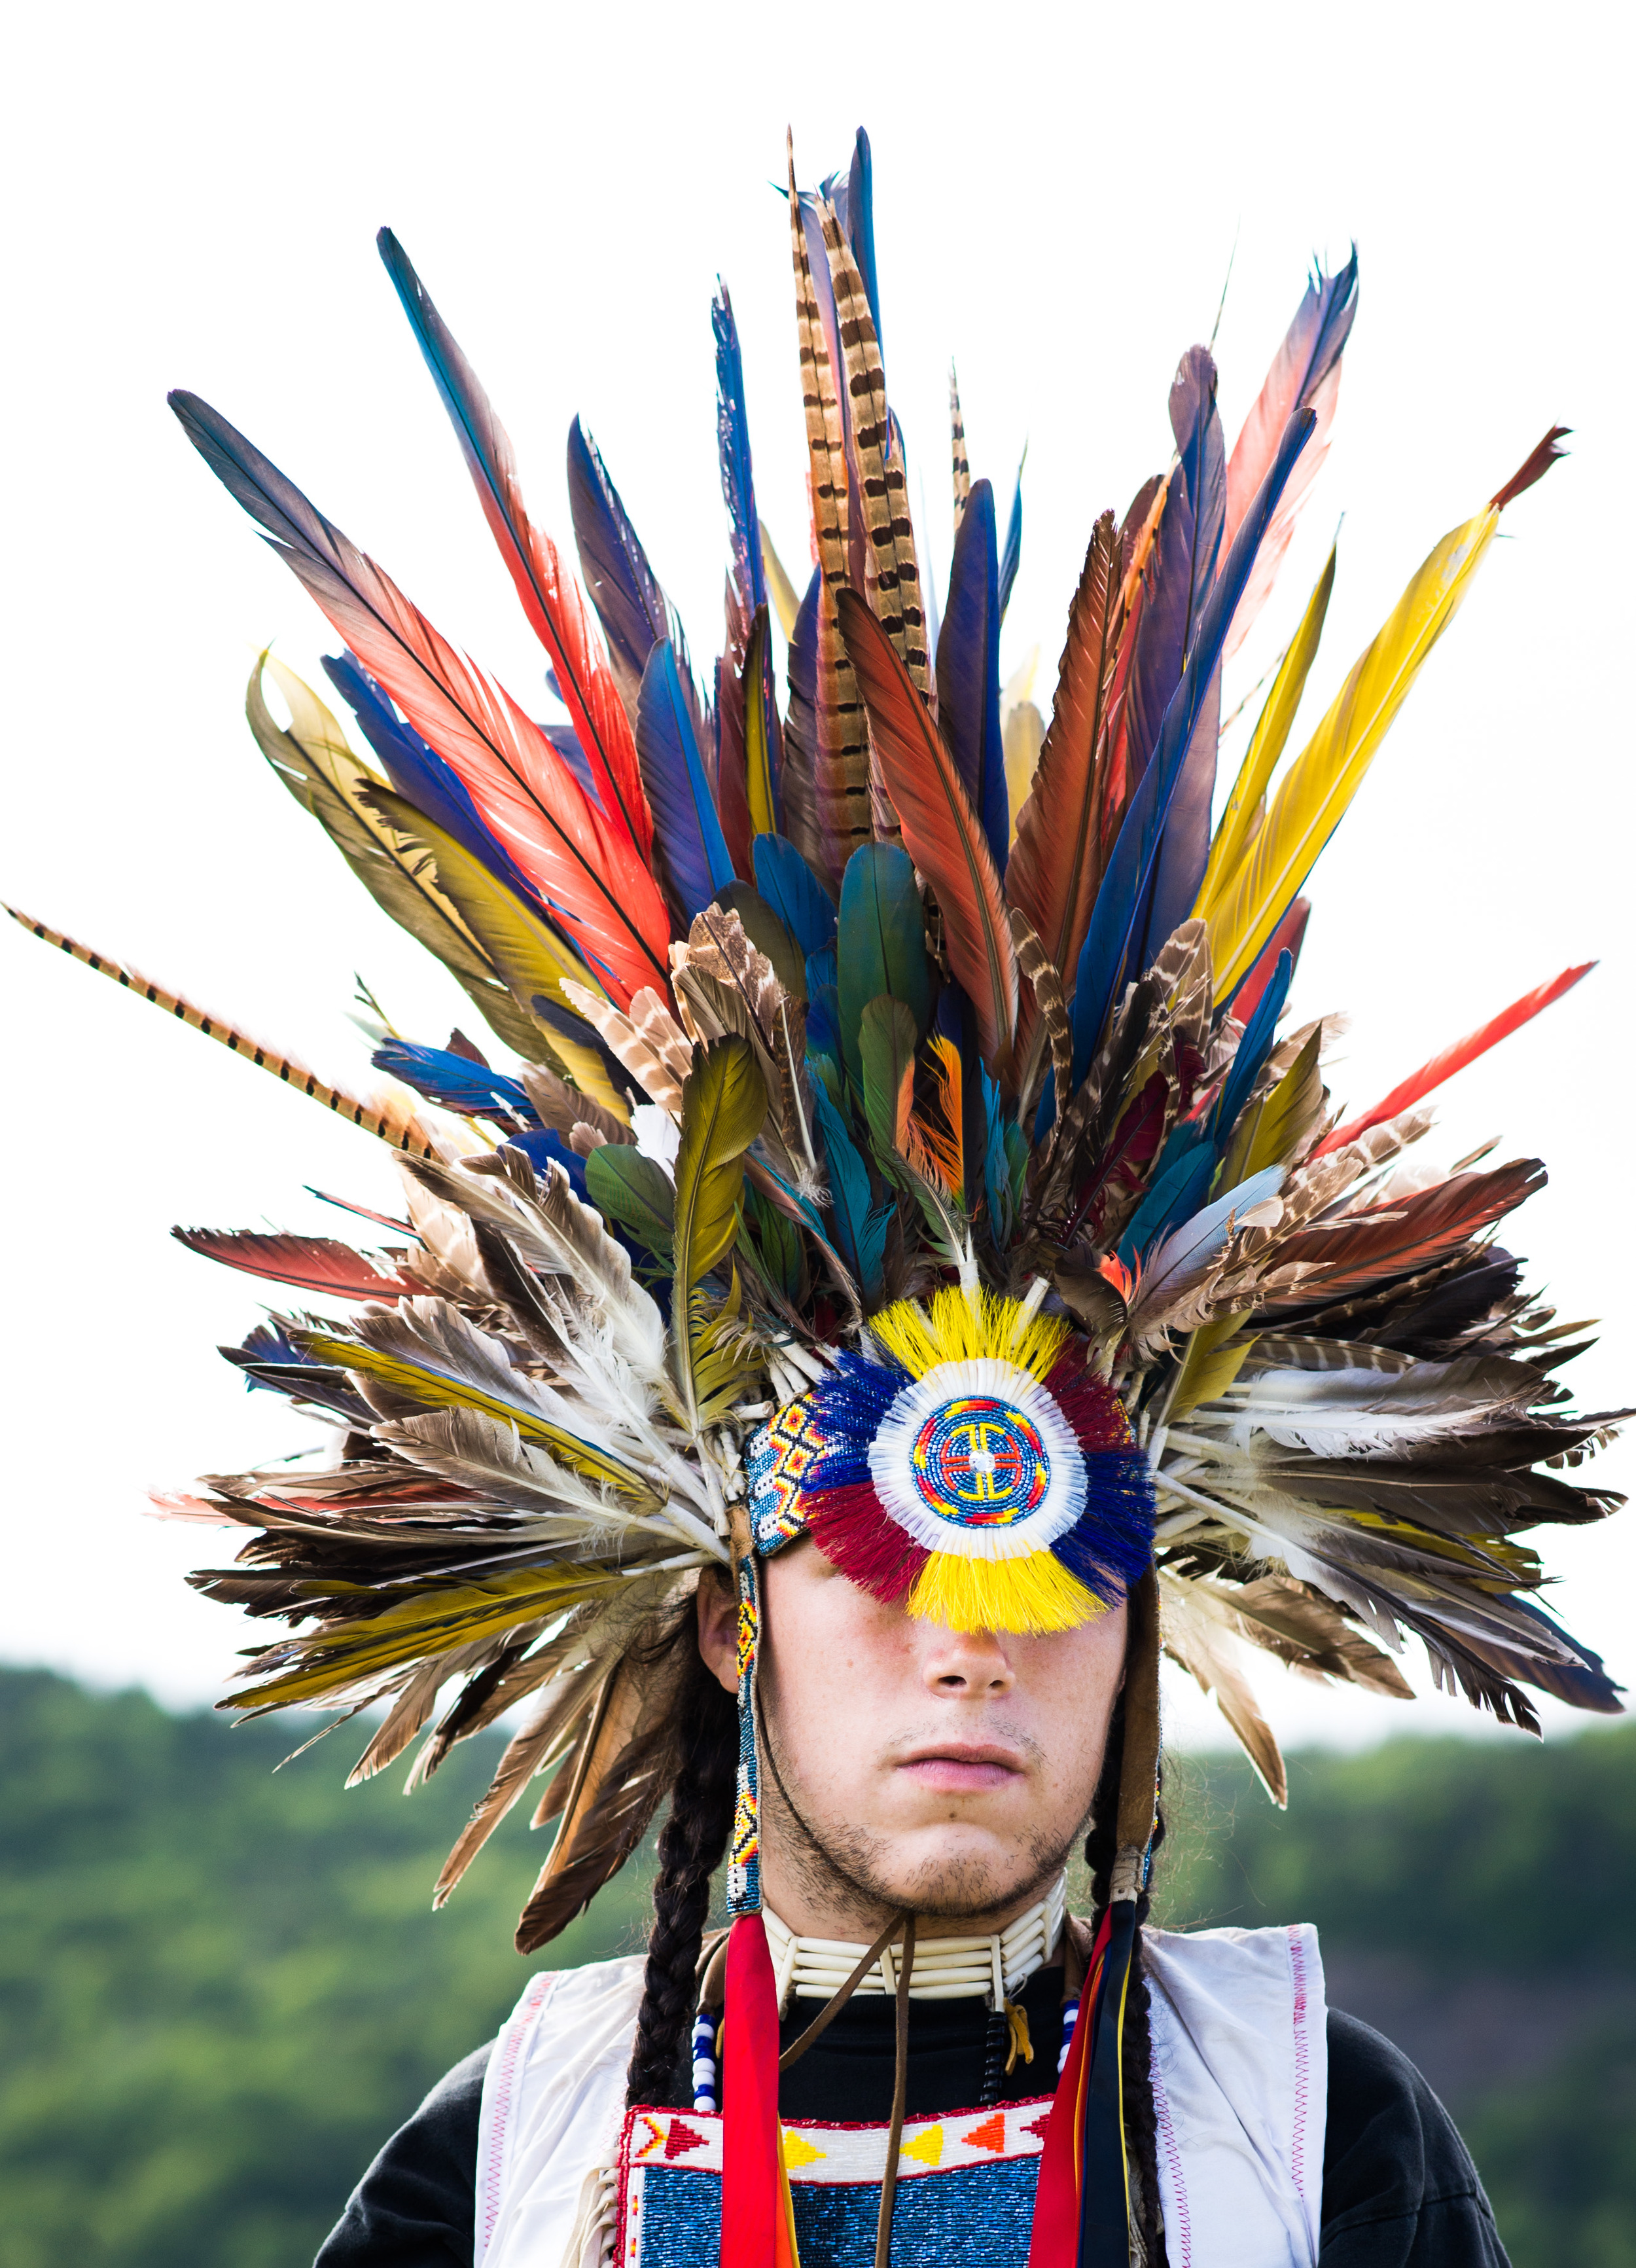 This person had one of the most distinctive headdresses at the powwow, and allowed me to take a few photos.